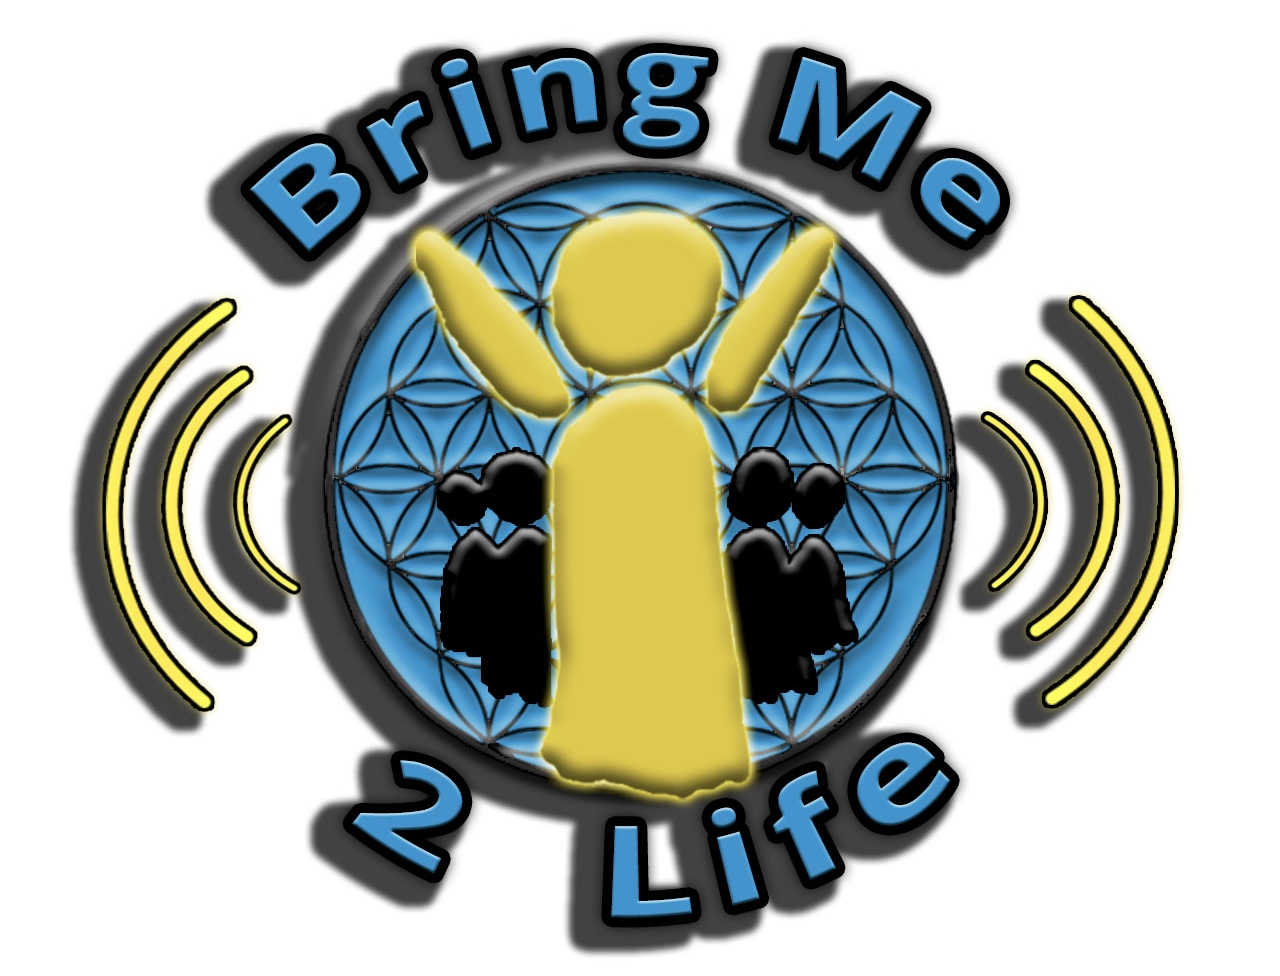 Mission Statement: - To help people wake up and shine on while promoting Global Equality, Unity, Peace and Love.We are actively pursuing our mission with many outlets including our multimedia network, which includes live radio broadcasts, podcasts, and live streaming TV.